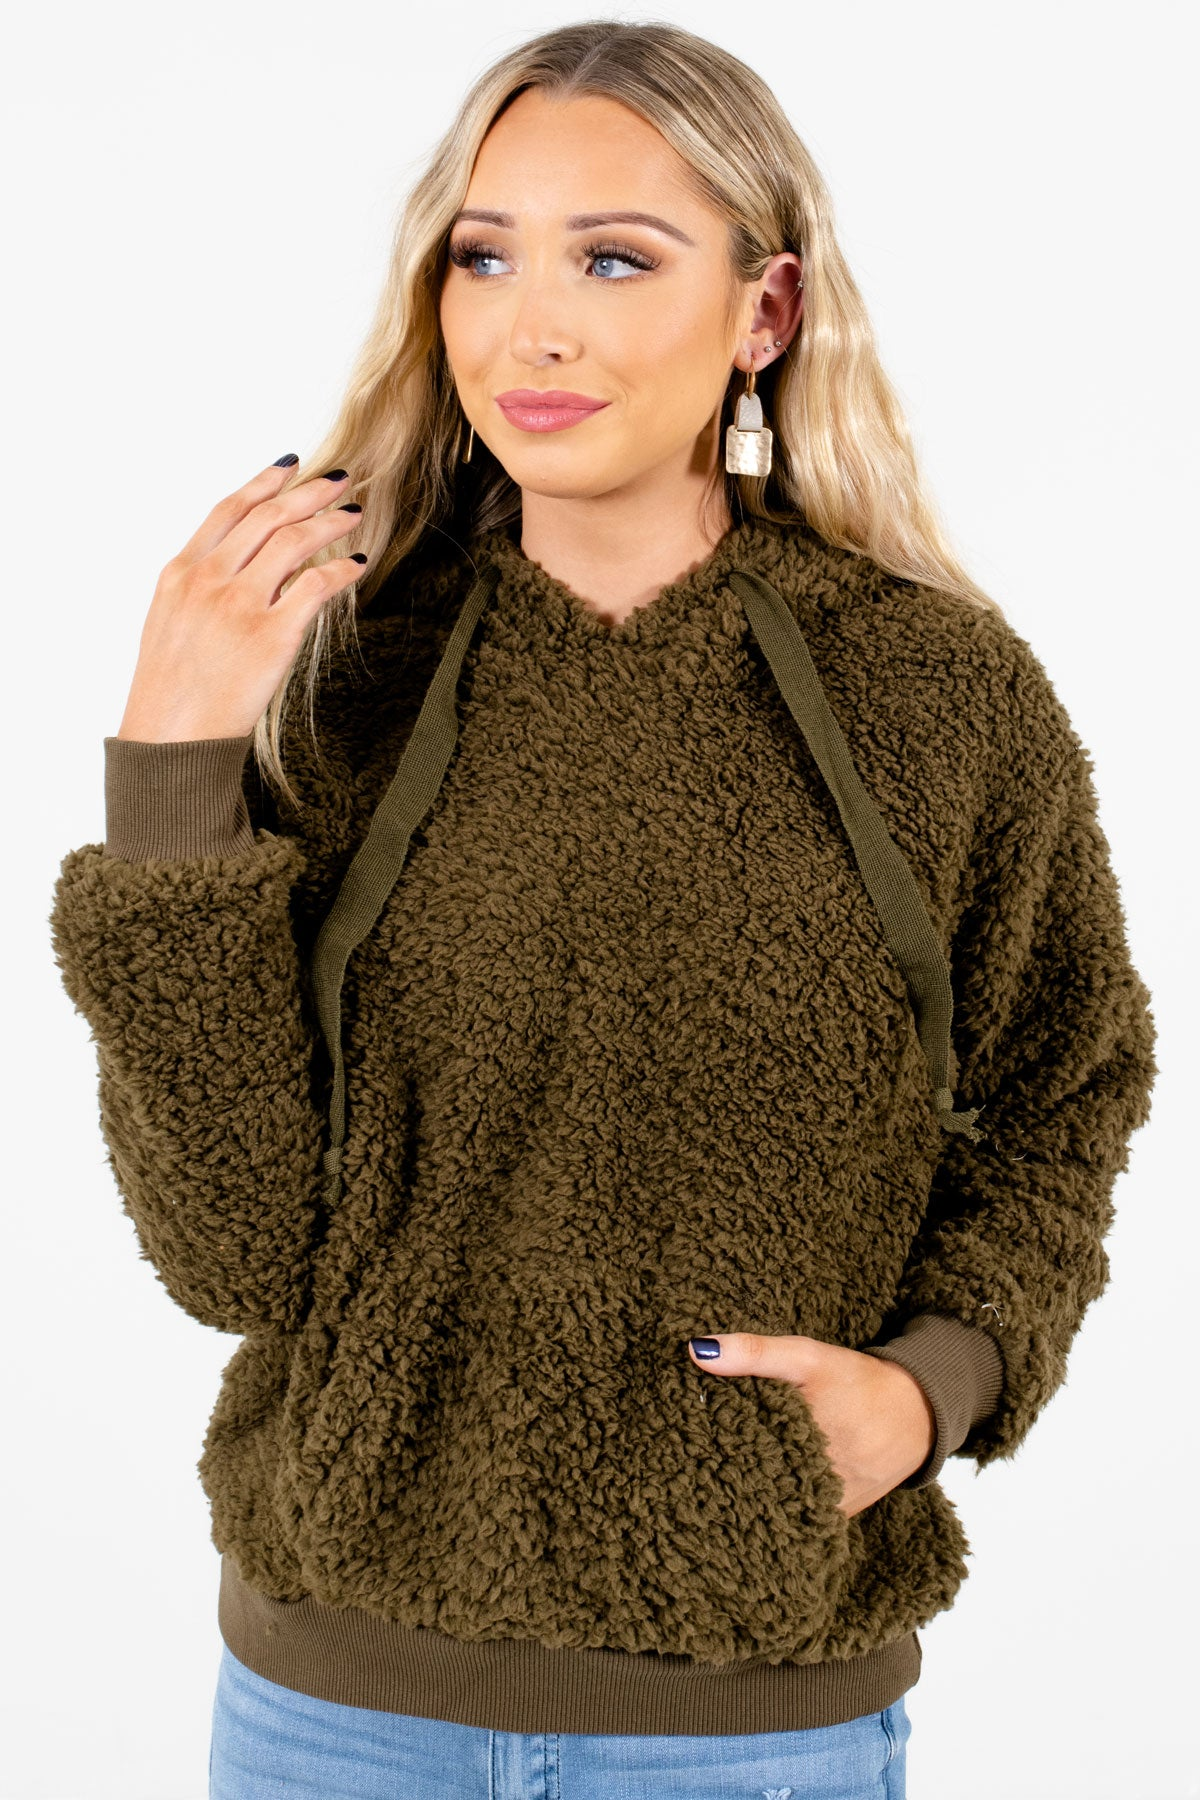 Olive Green High-Quality Faux Sherpa Material Boutique Hoodies for Women